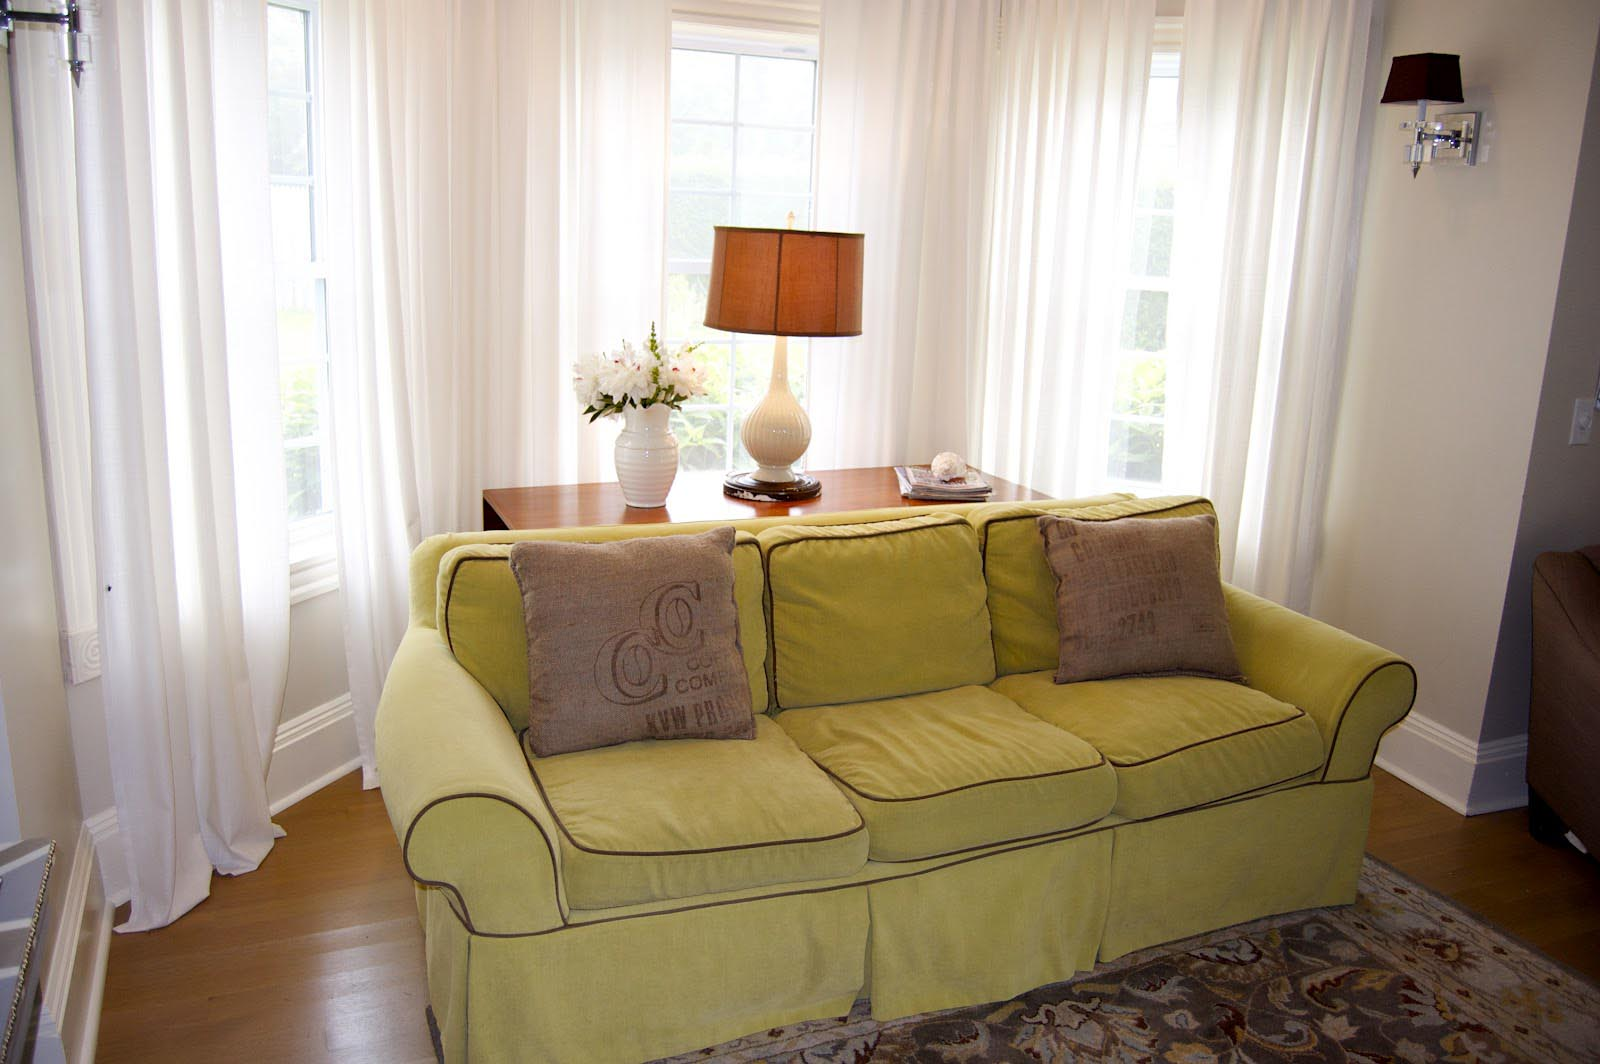 Living room bay window treatments window treatments for Bay window treatment ideas living room